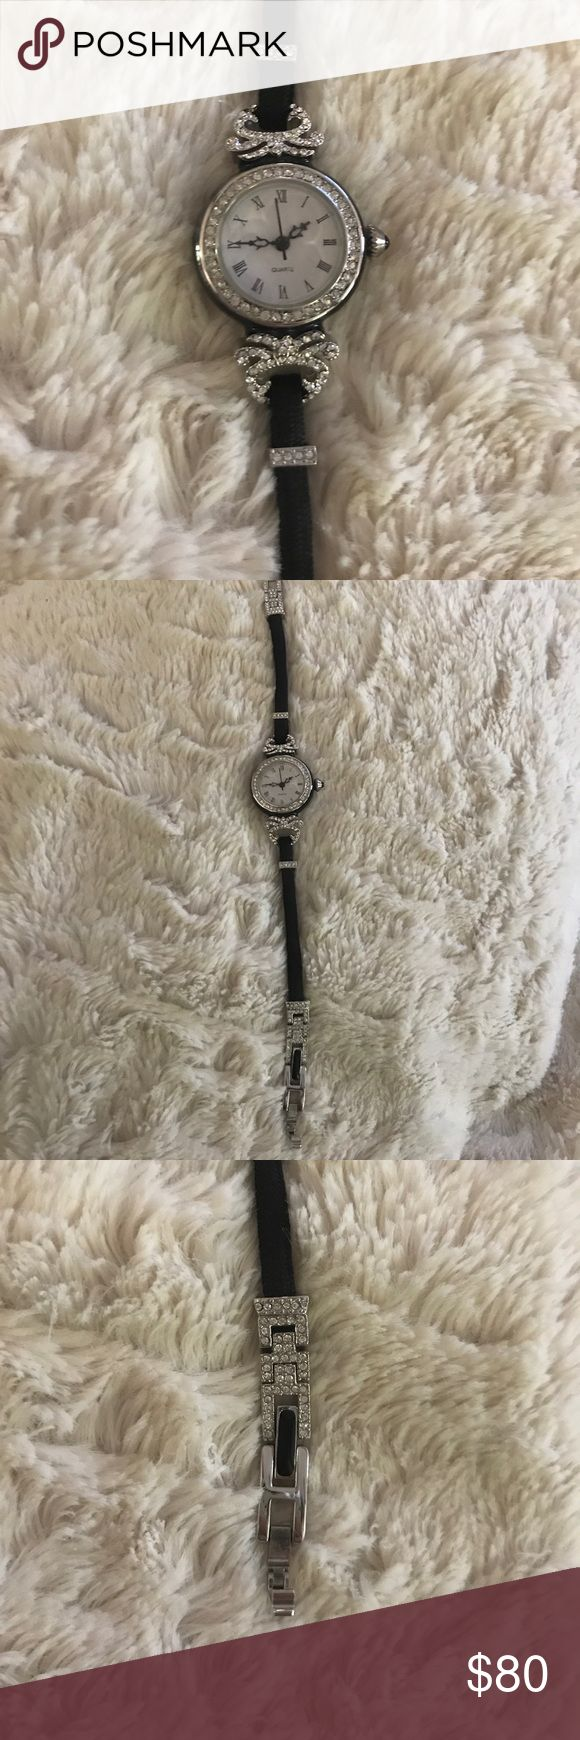 Metropolitan Museum of Art Swarovski watch Never worn beautiful collectible watch from the Metropolitan Museum of Art. Metropolitan Museum of Art Accessories Watches